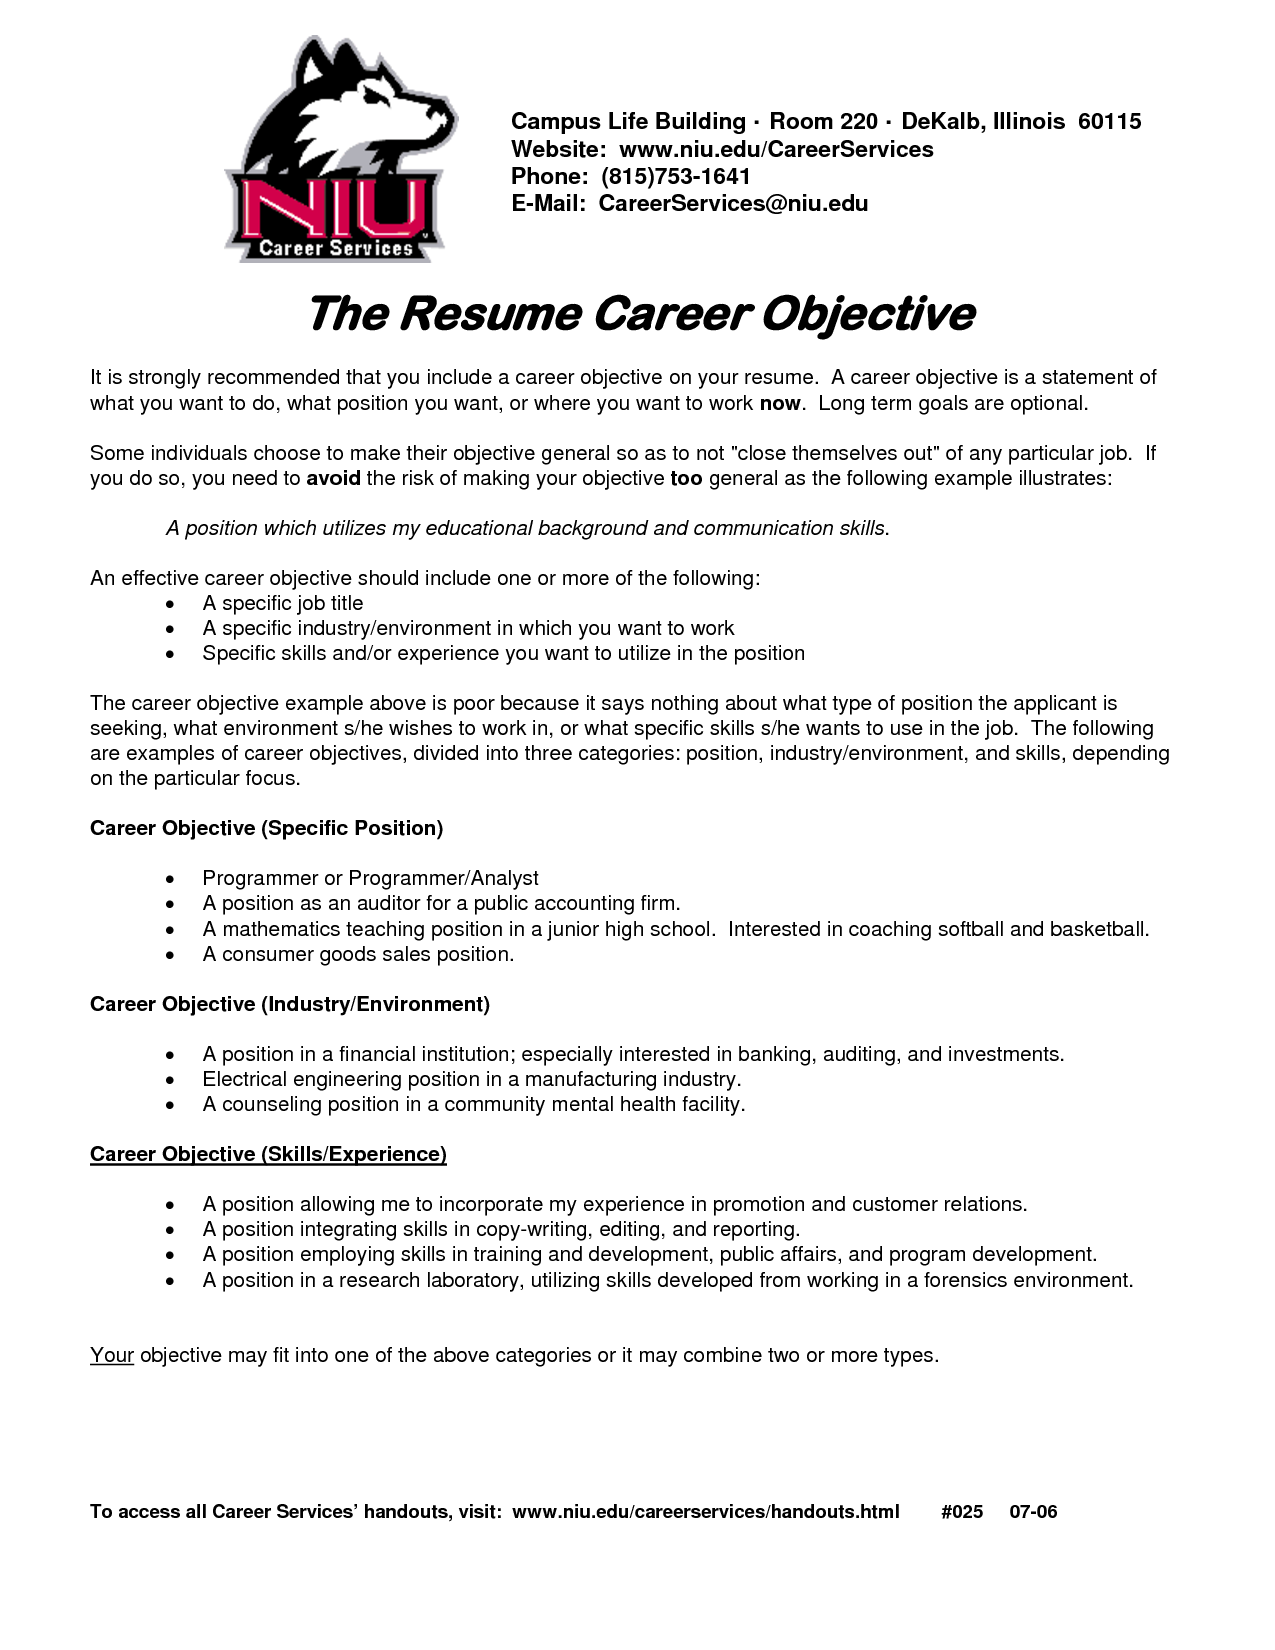 Customer Service Resume  Resume Objective Examples Customer Service